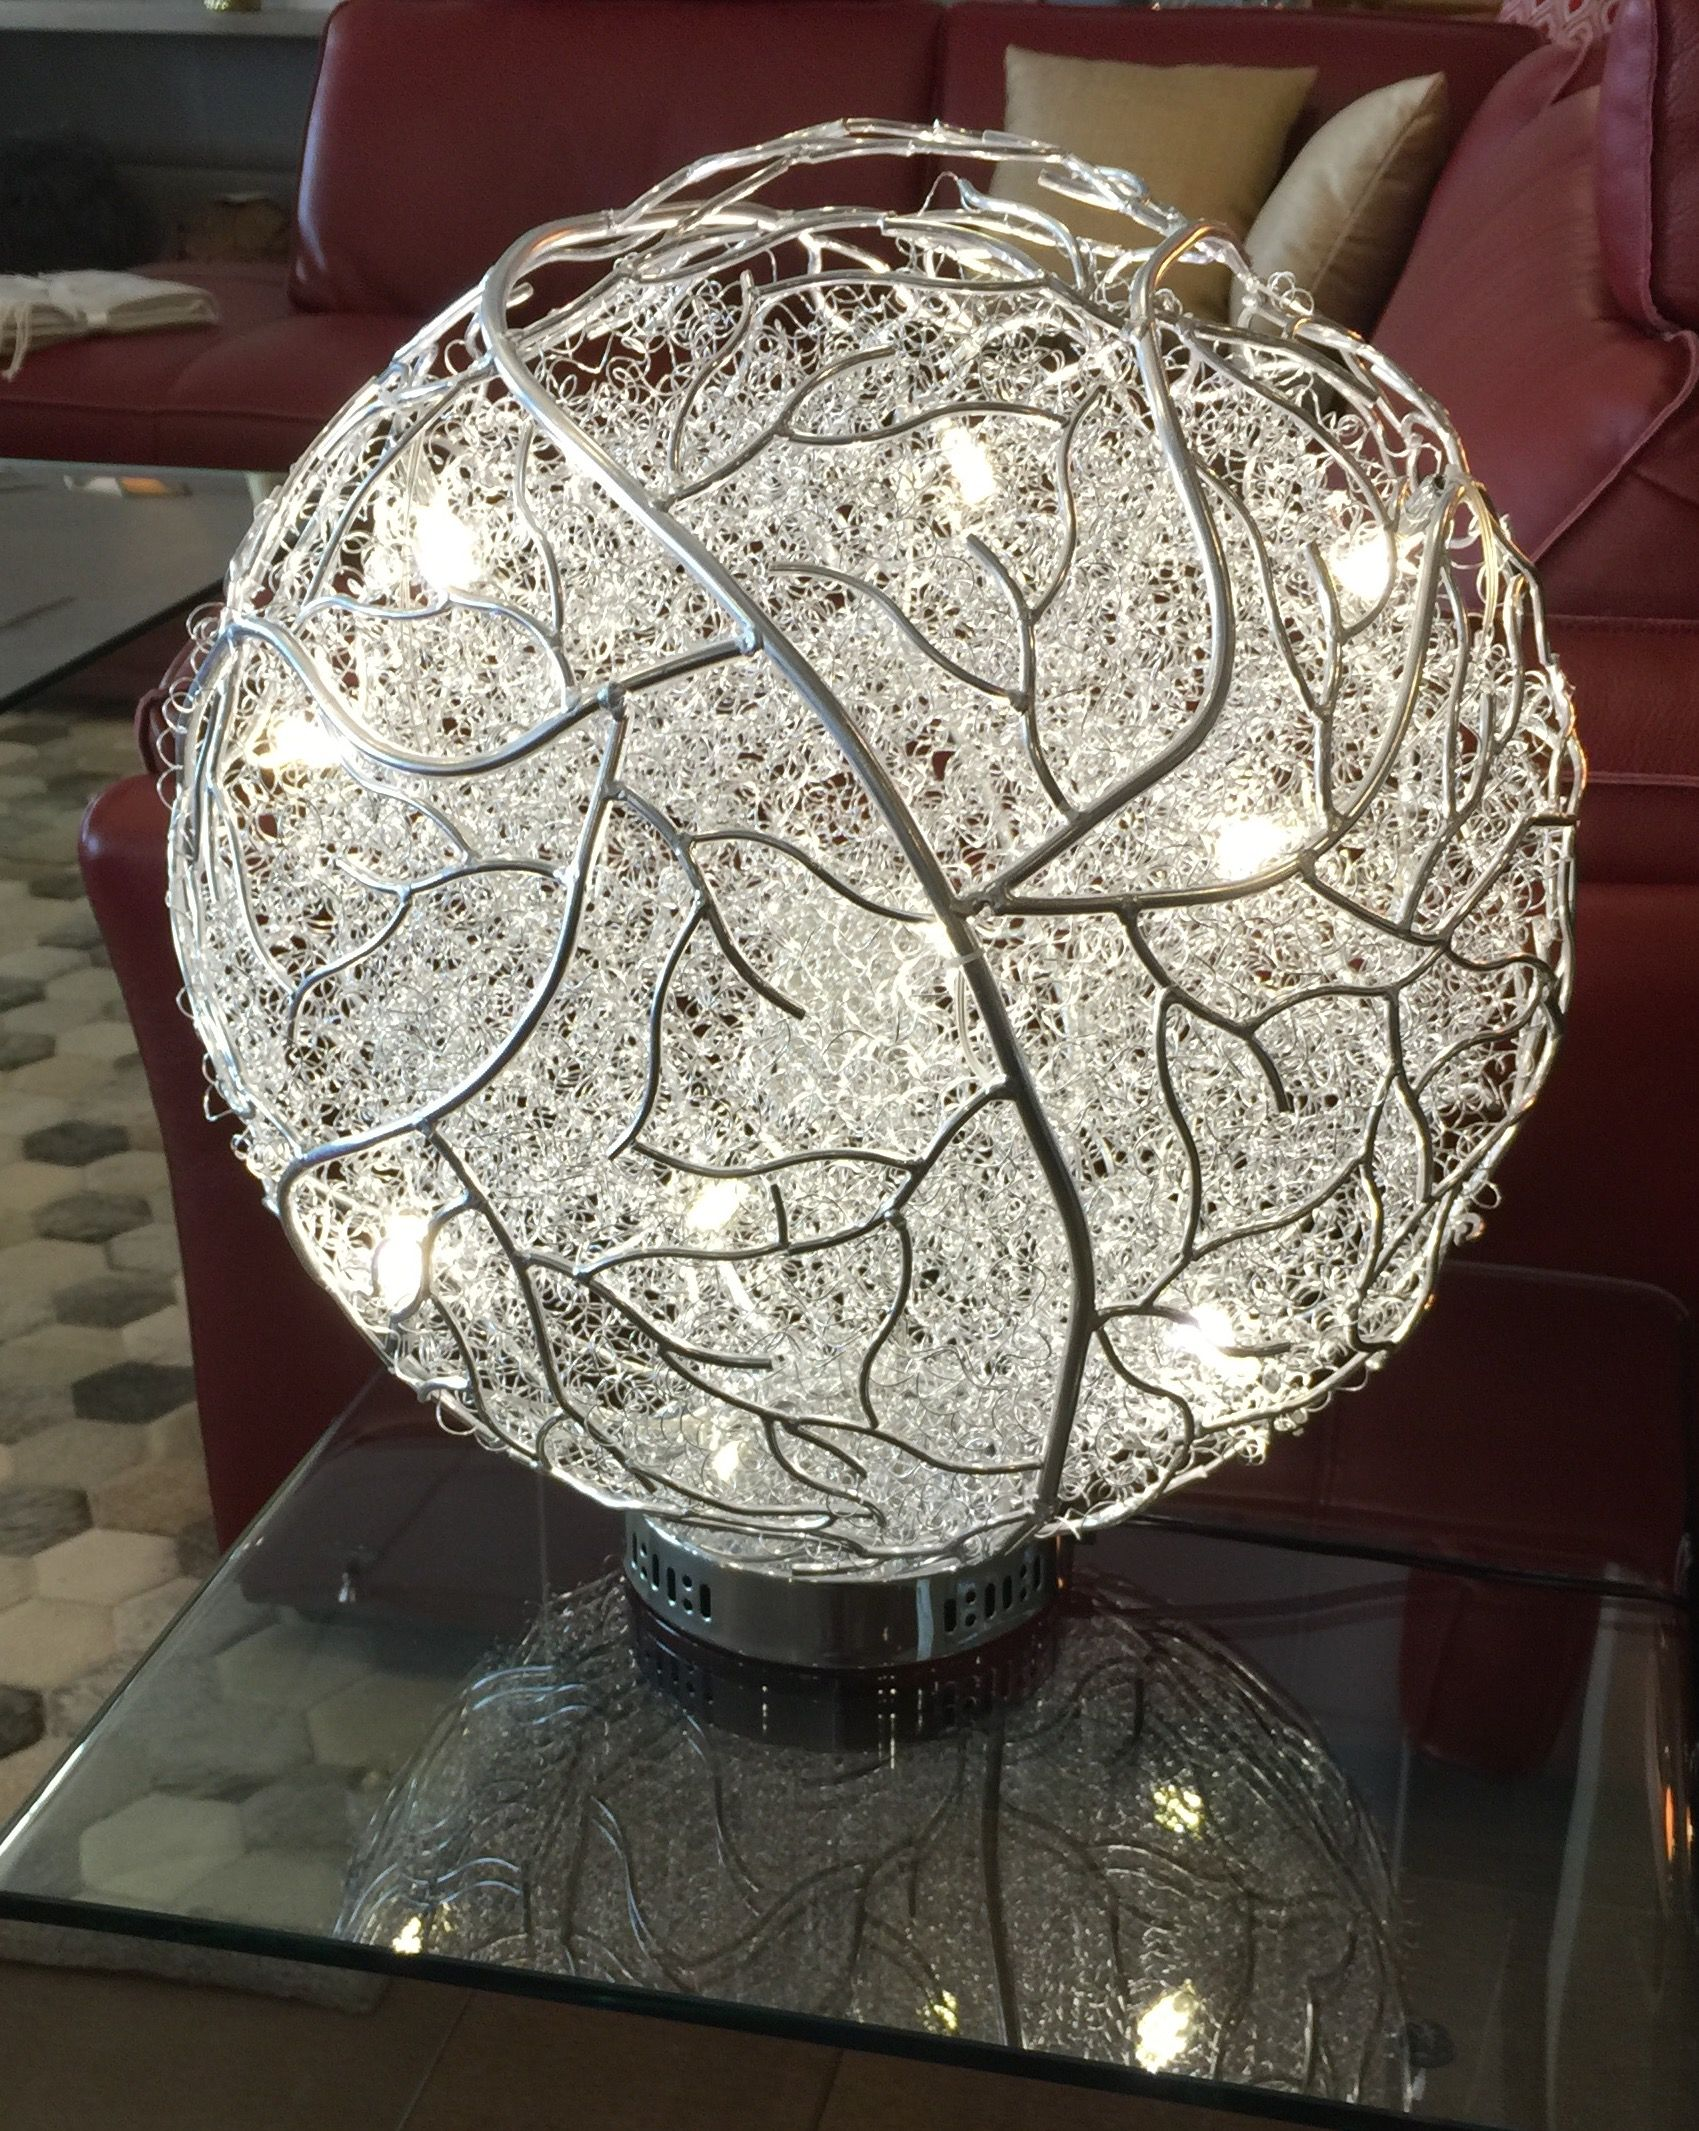 Arclite LED Sphere Scandinavia Inc Metairie New Orleans Louisiana Contemporary  Modern Furniture